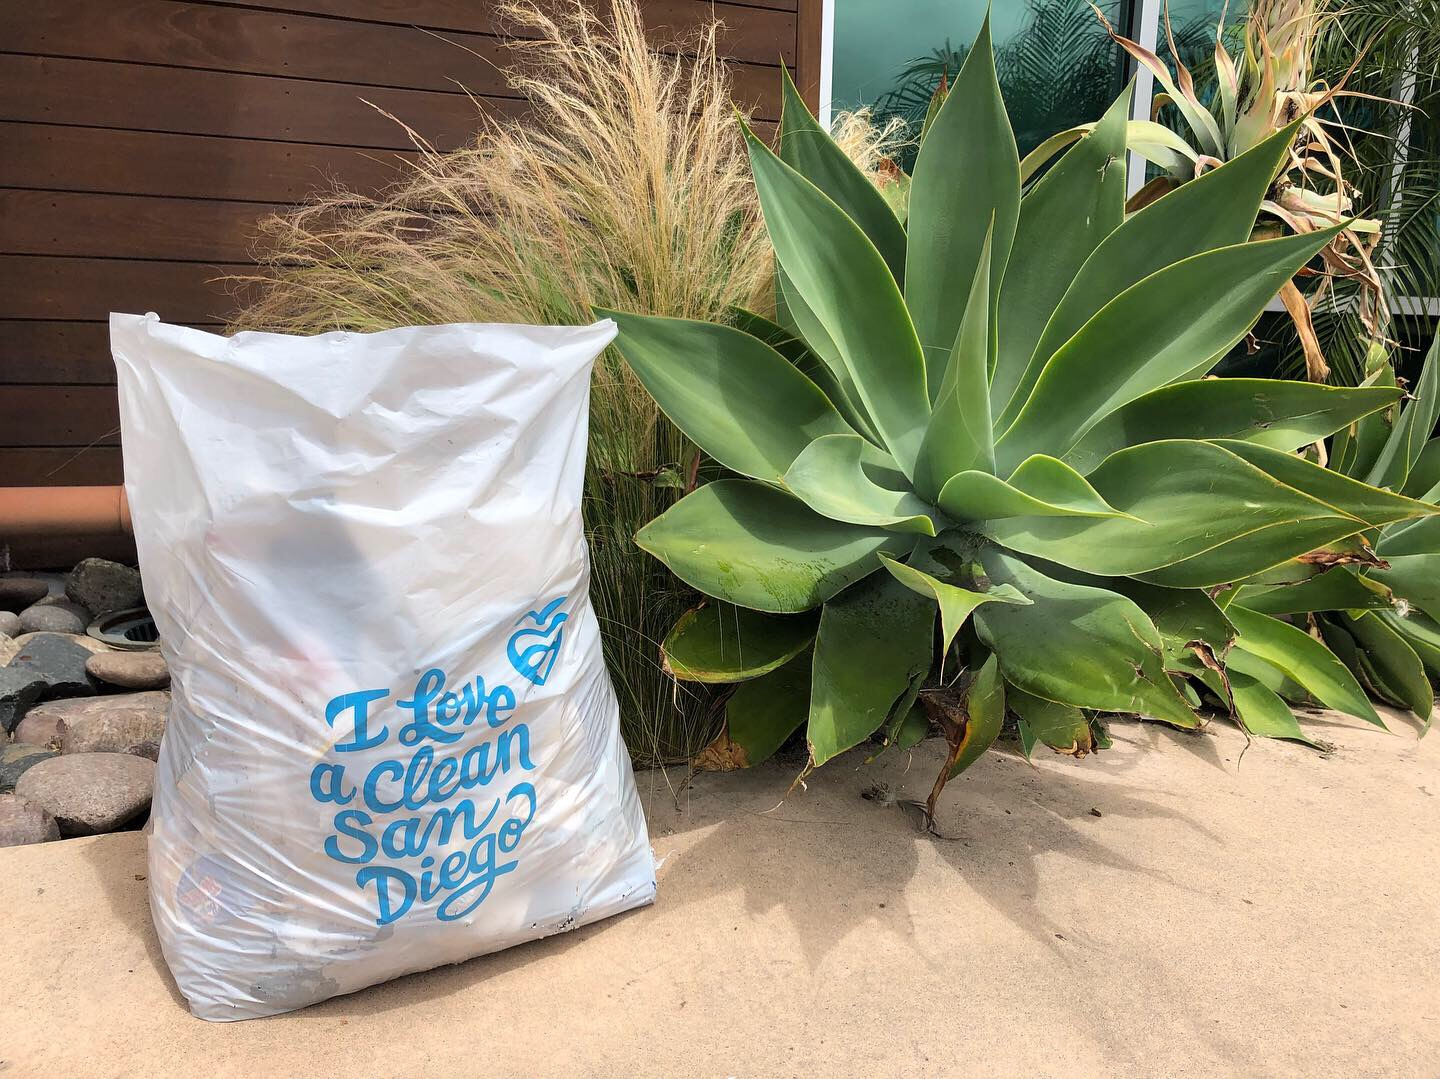 point-loman-trash-cleanup-i-love-a-clean-san-diego-may-7-2019.JPG